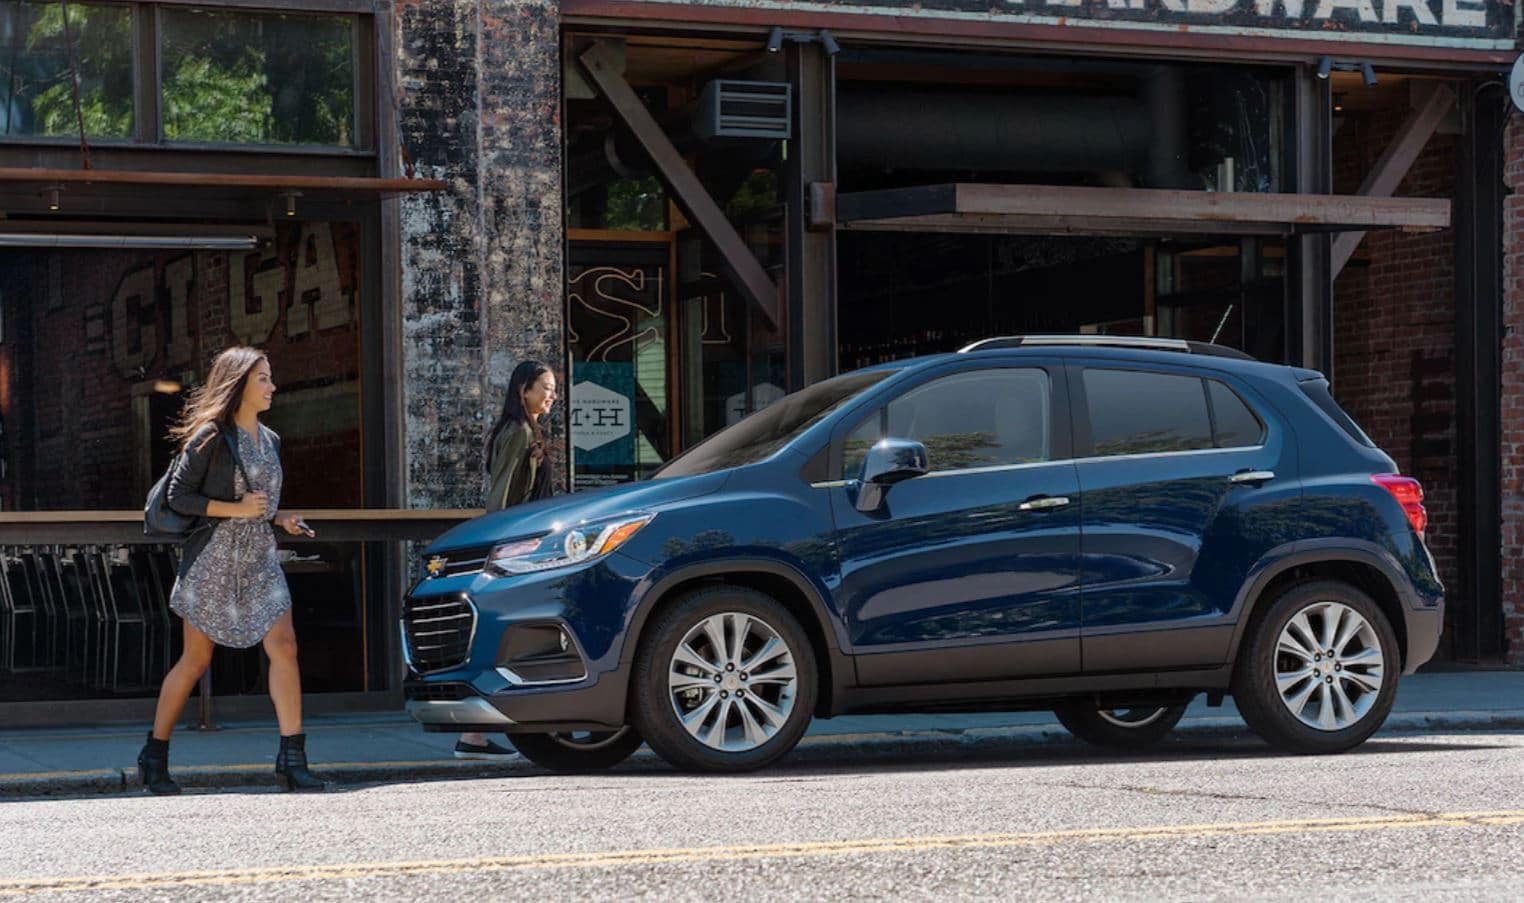 2018 Chevrolet Trax Ron Westphal Chevrolet Naperville, IL